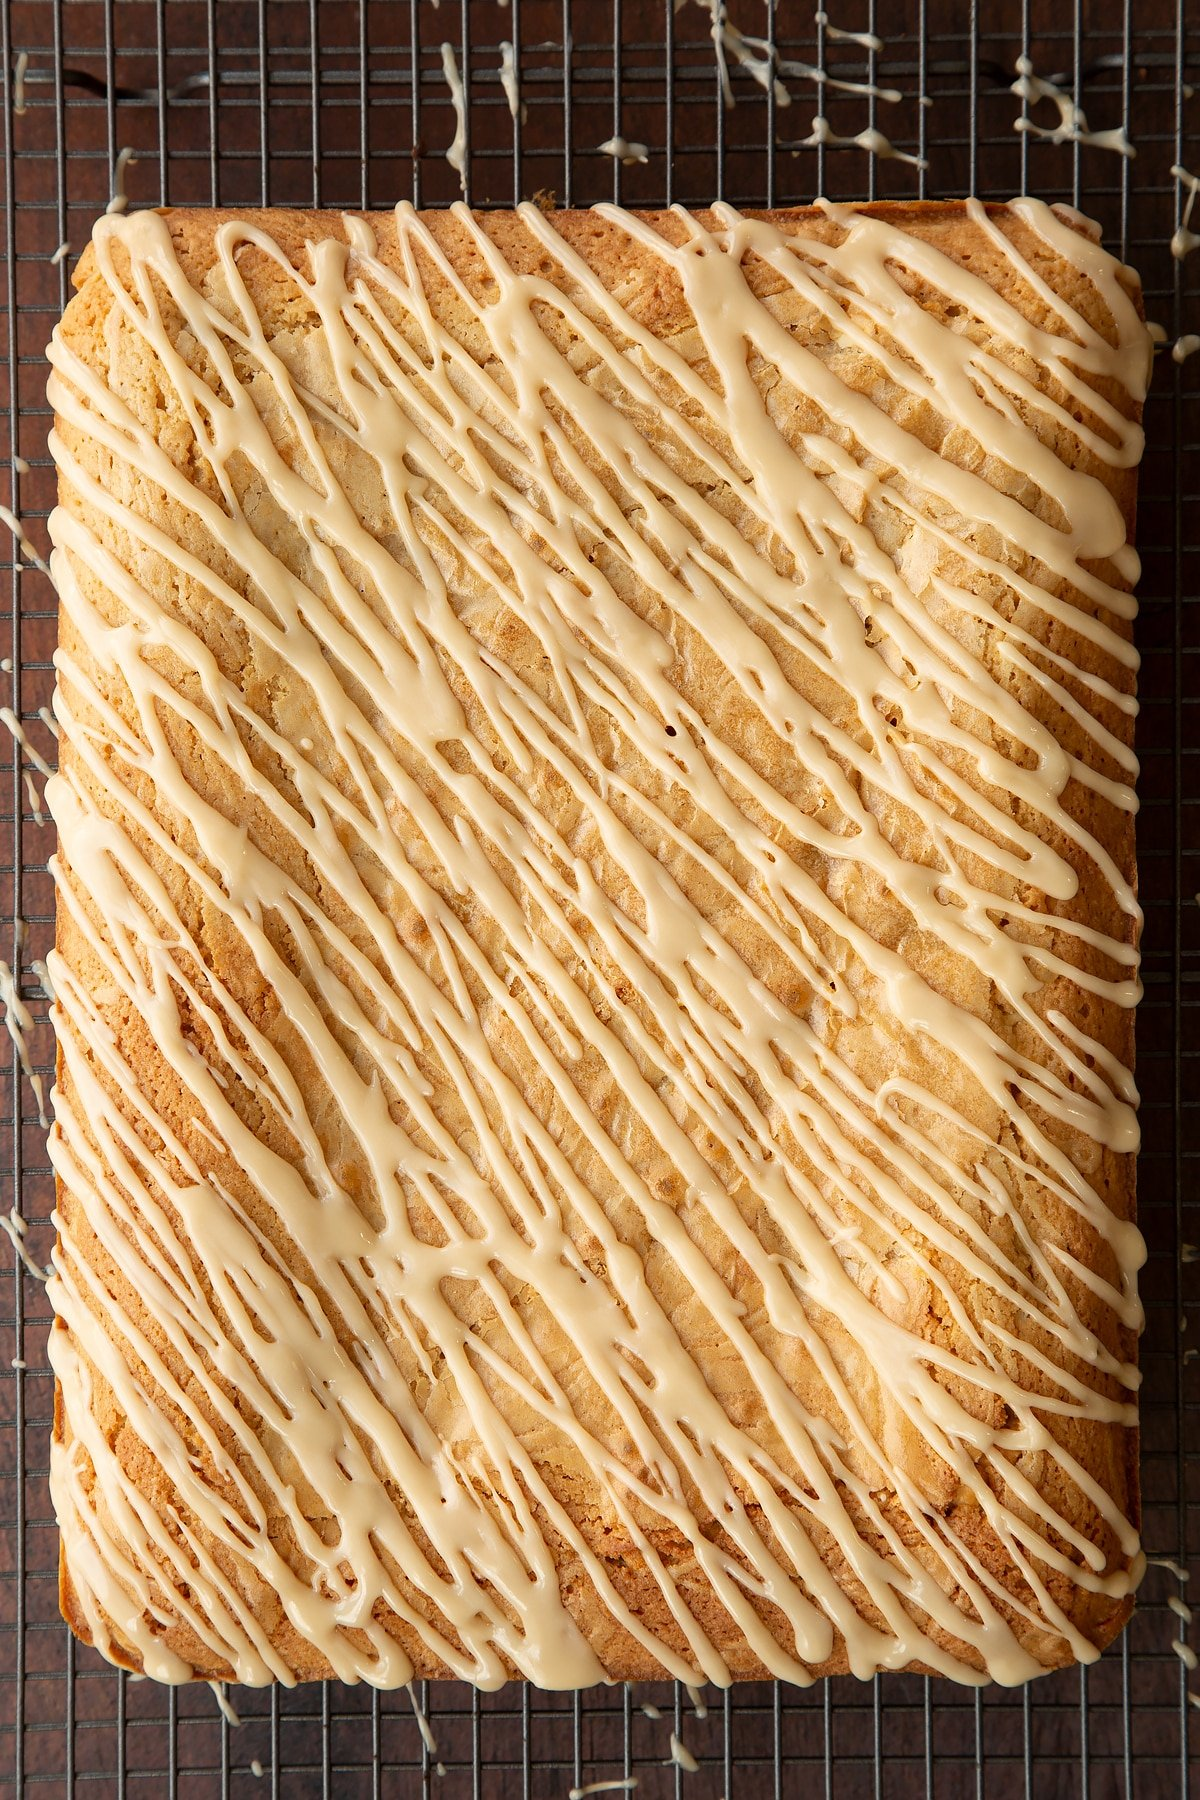 Freshly baked Baileys blondie drizzled with Baileys icing on a wire rack.